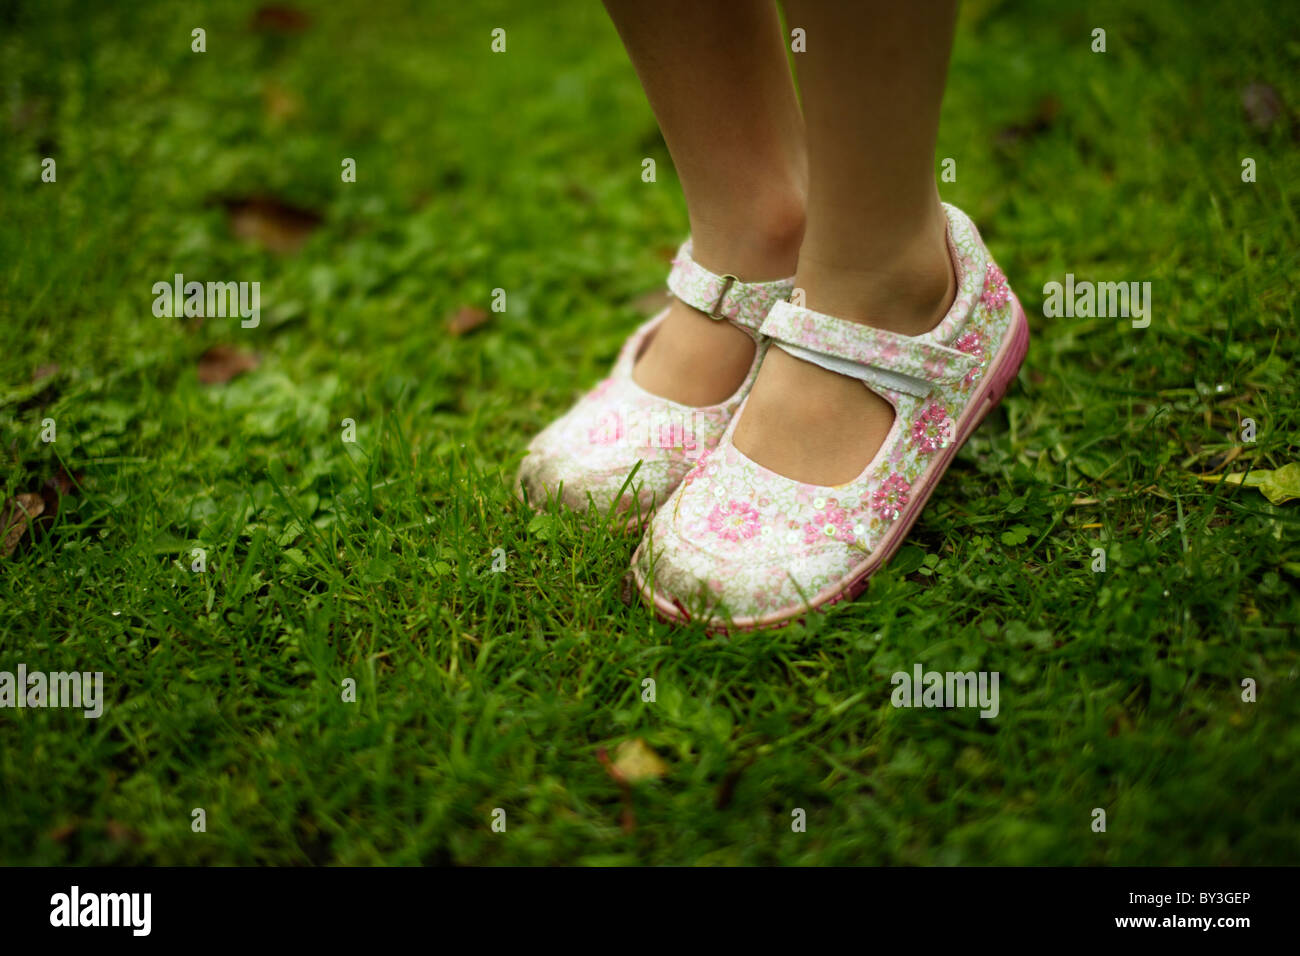 Girl's glittery shoes on lawn - Stock Image